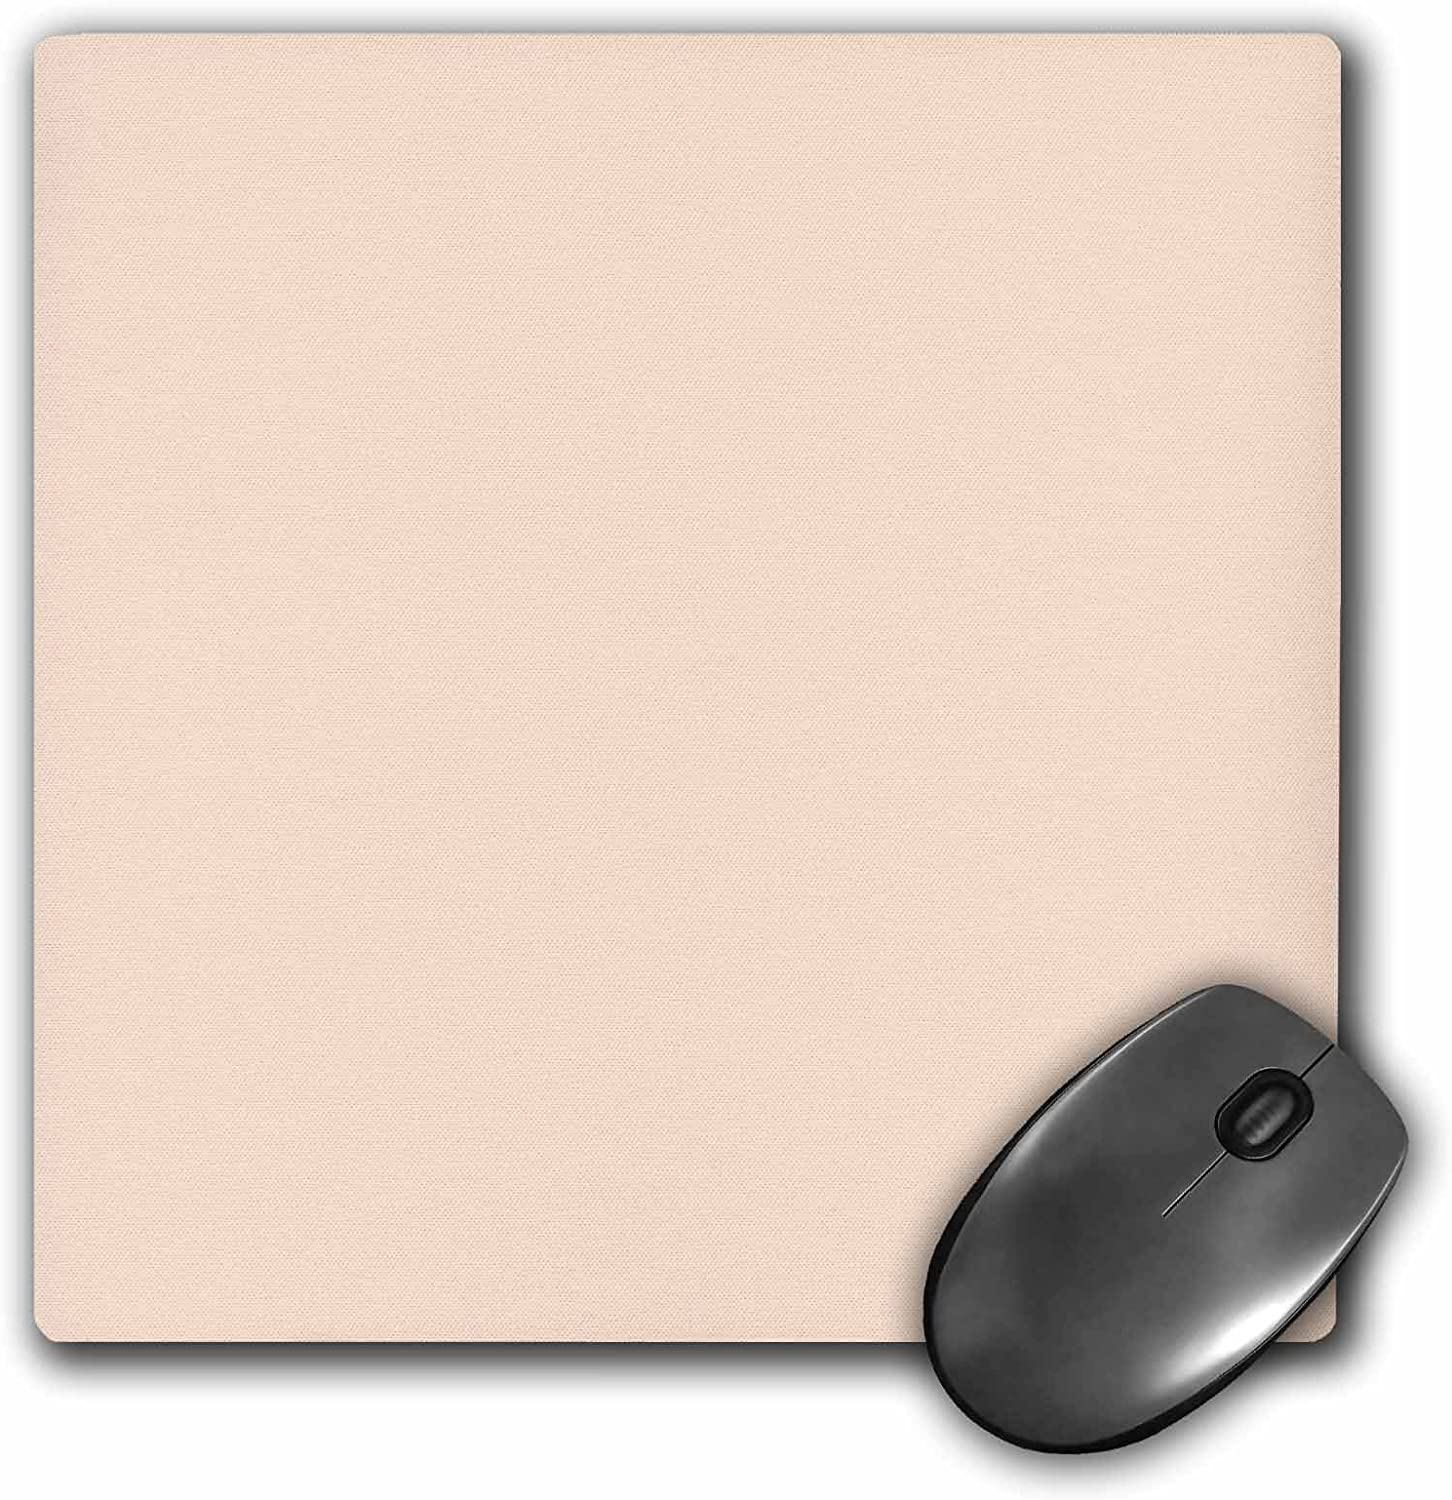 3dRose Light peach - nude flesh color - pastel orange - Mouse Pad, 8 by 8 inches (mp_159866_1)